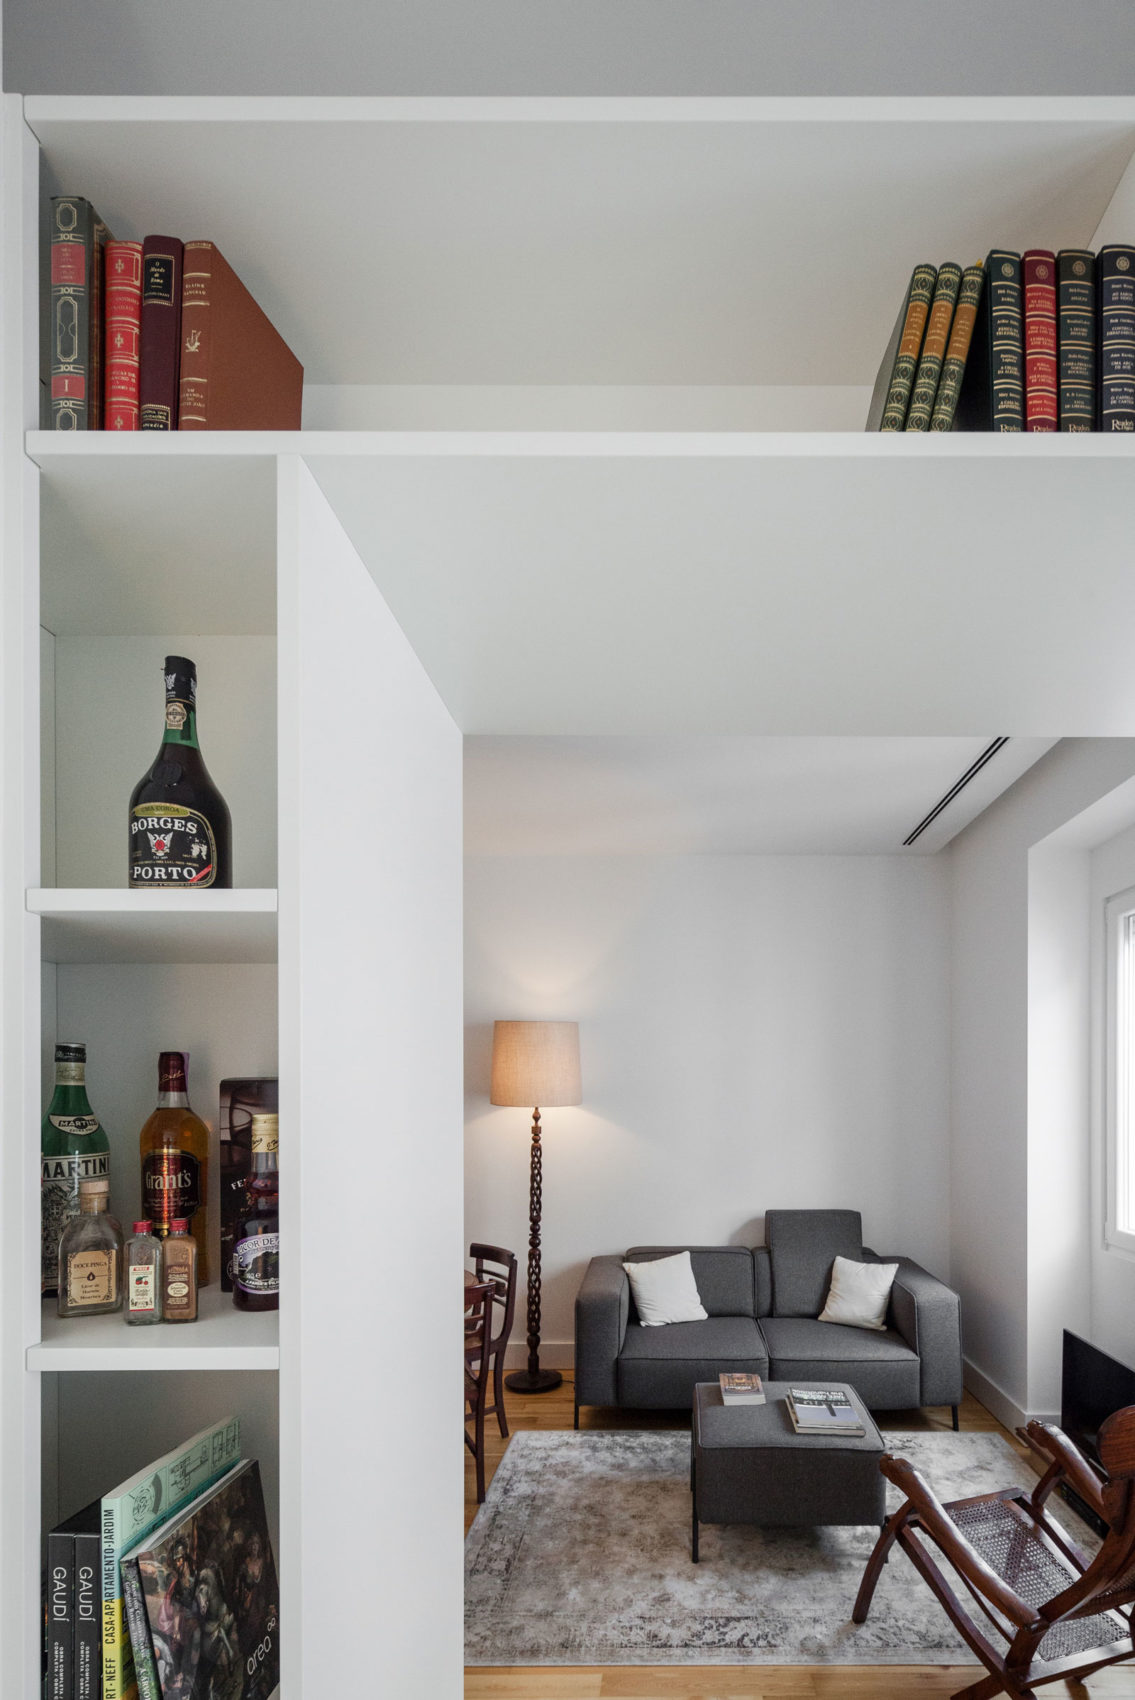 Apartment B9 by Filipe Melo Oliveira (13)